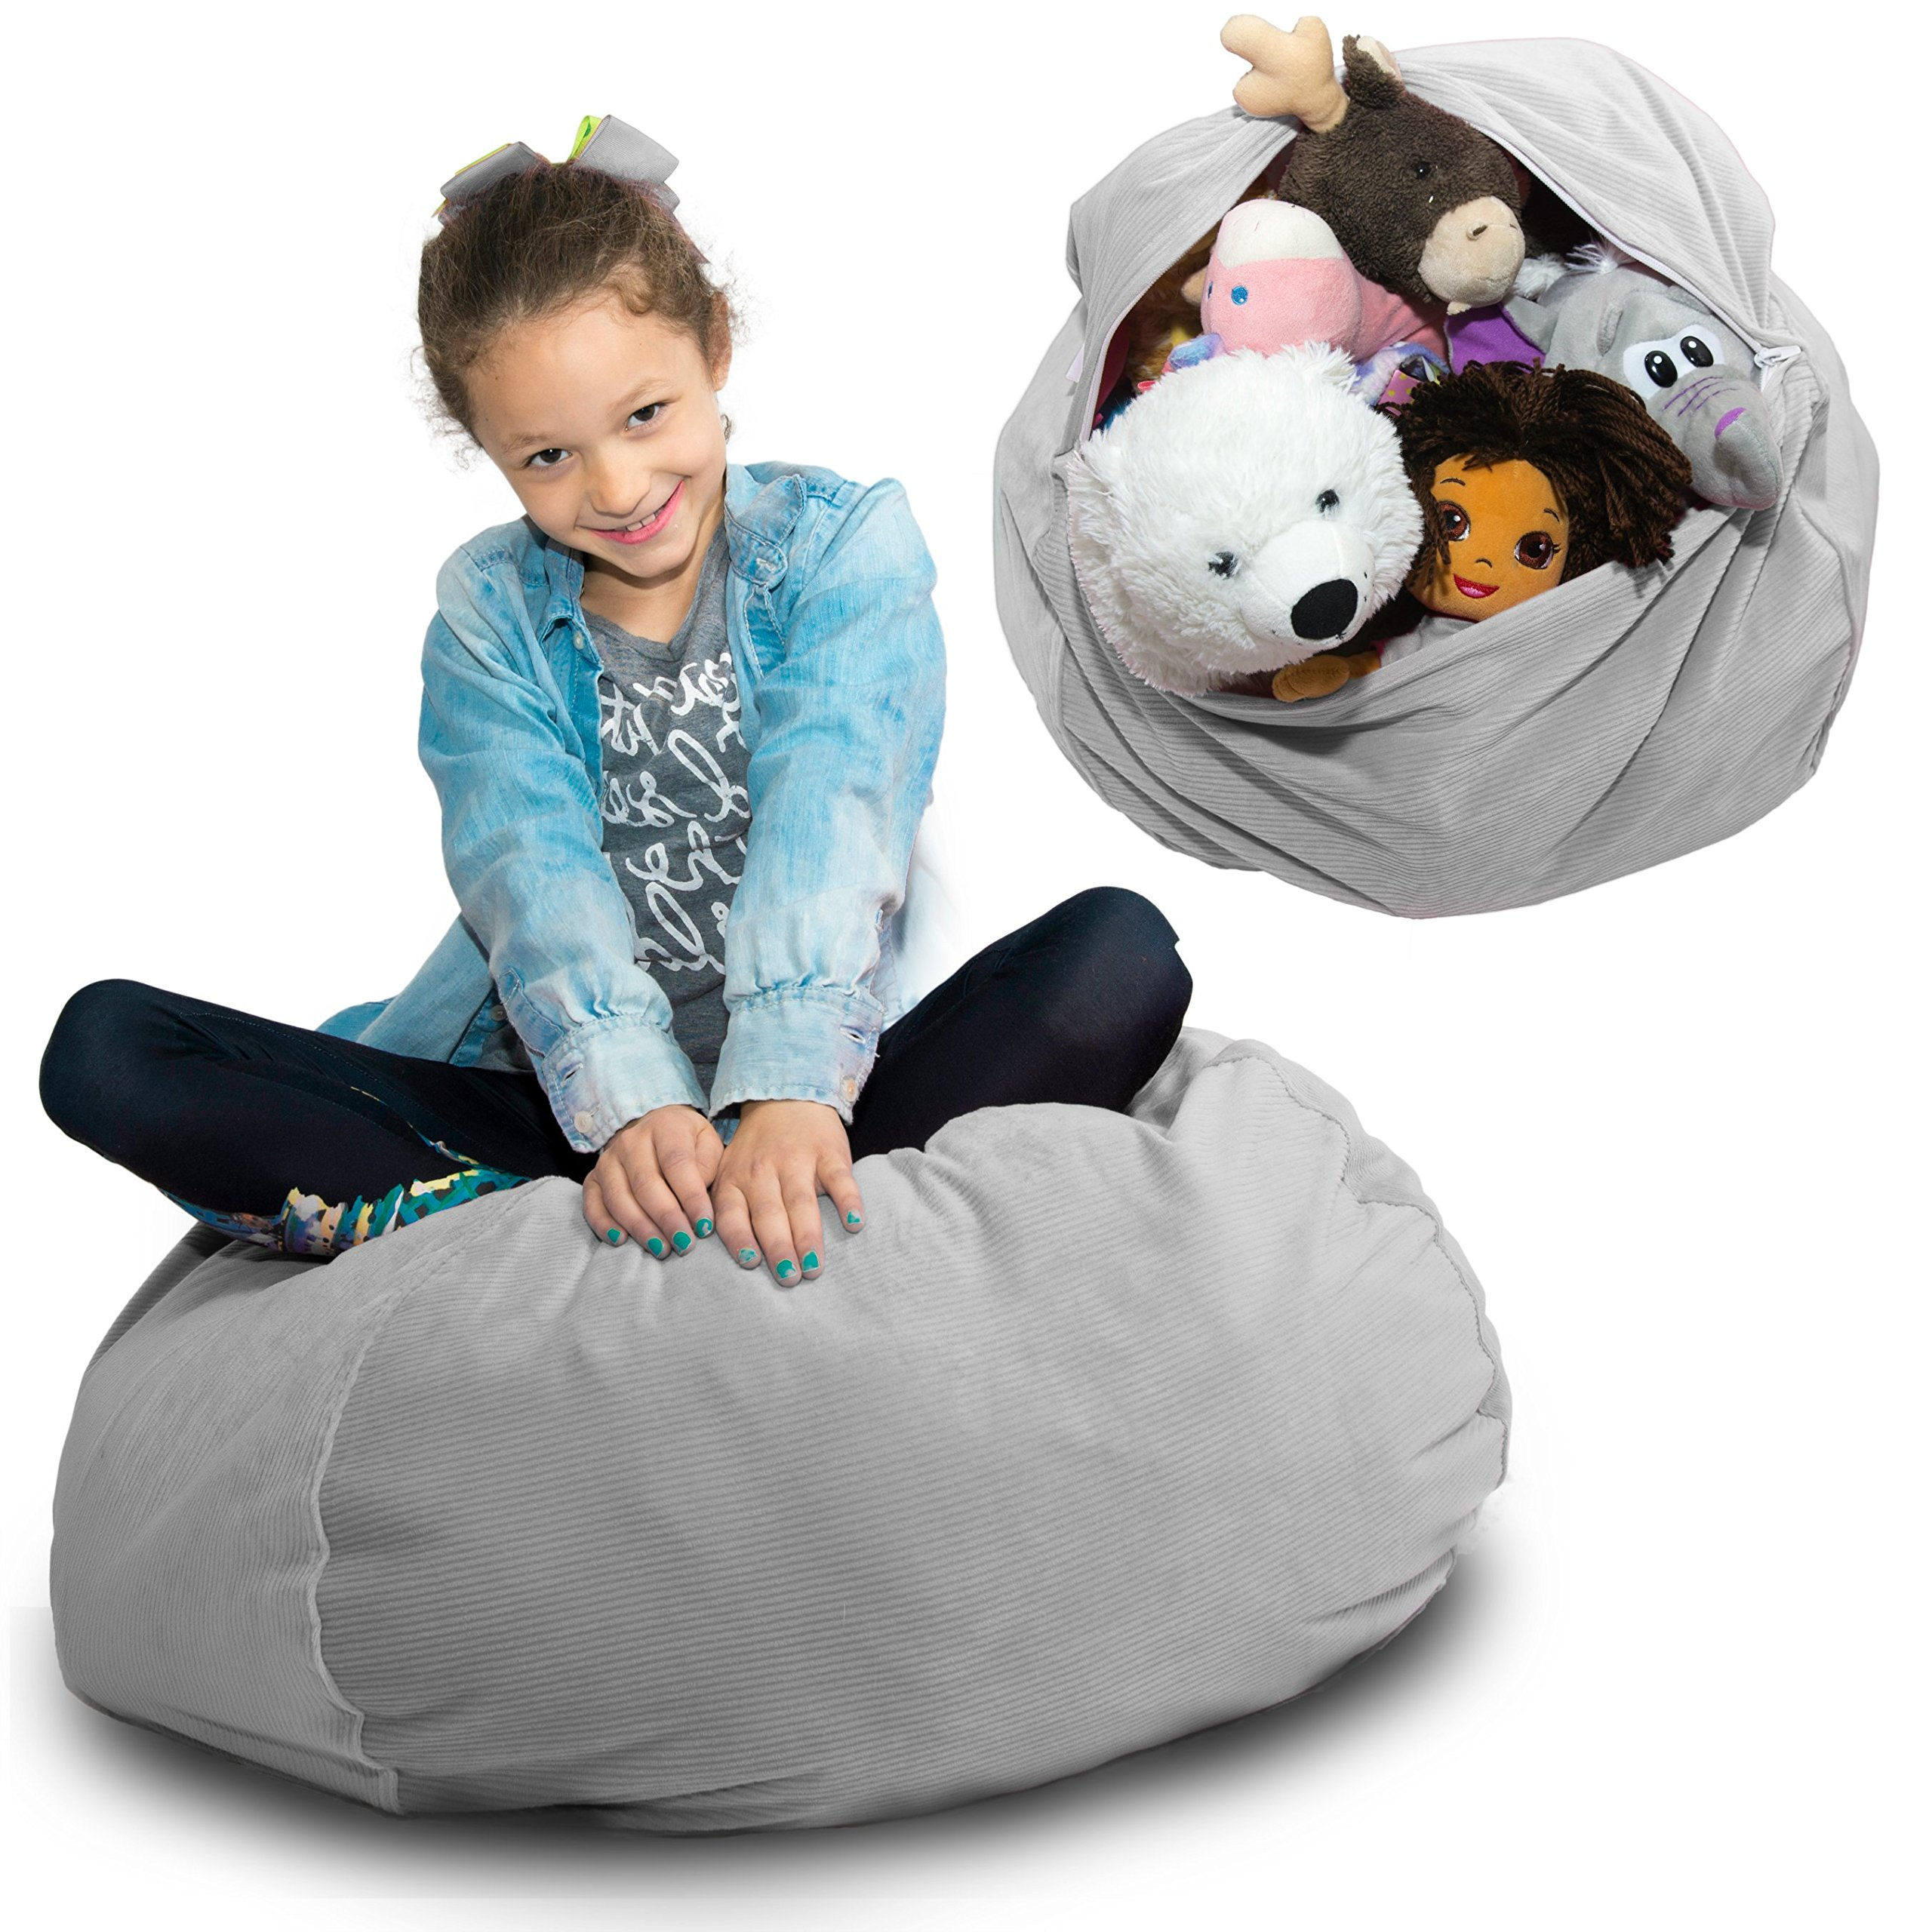 at chair bean shark inventions one walmart full tank as is size bag the pillow bedroom all design with bed au seen of and built awesome hell blanket on cover a what in baby cat